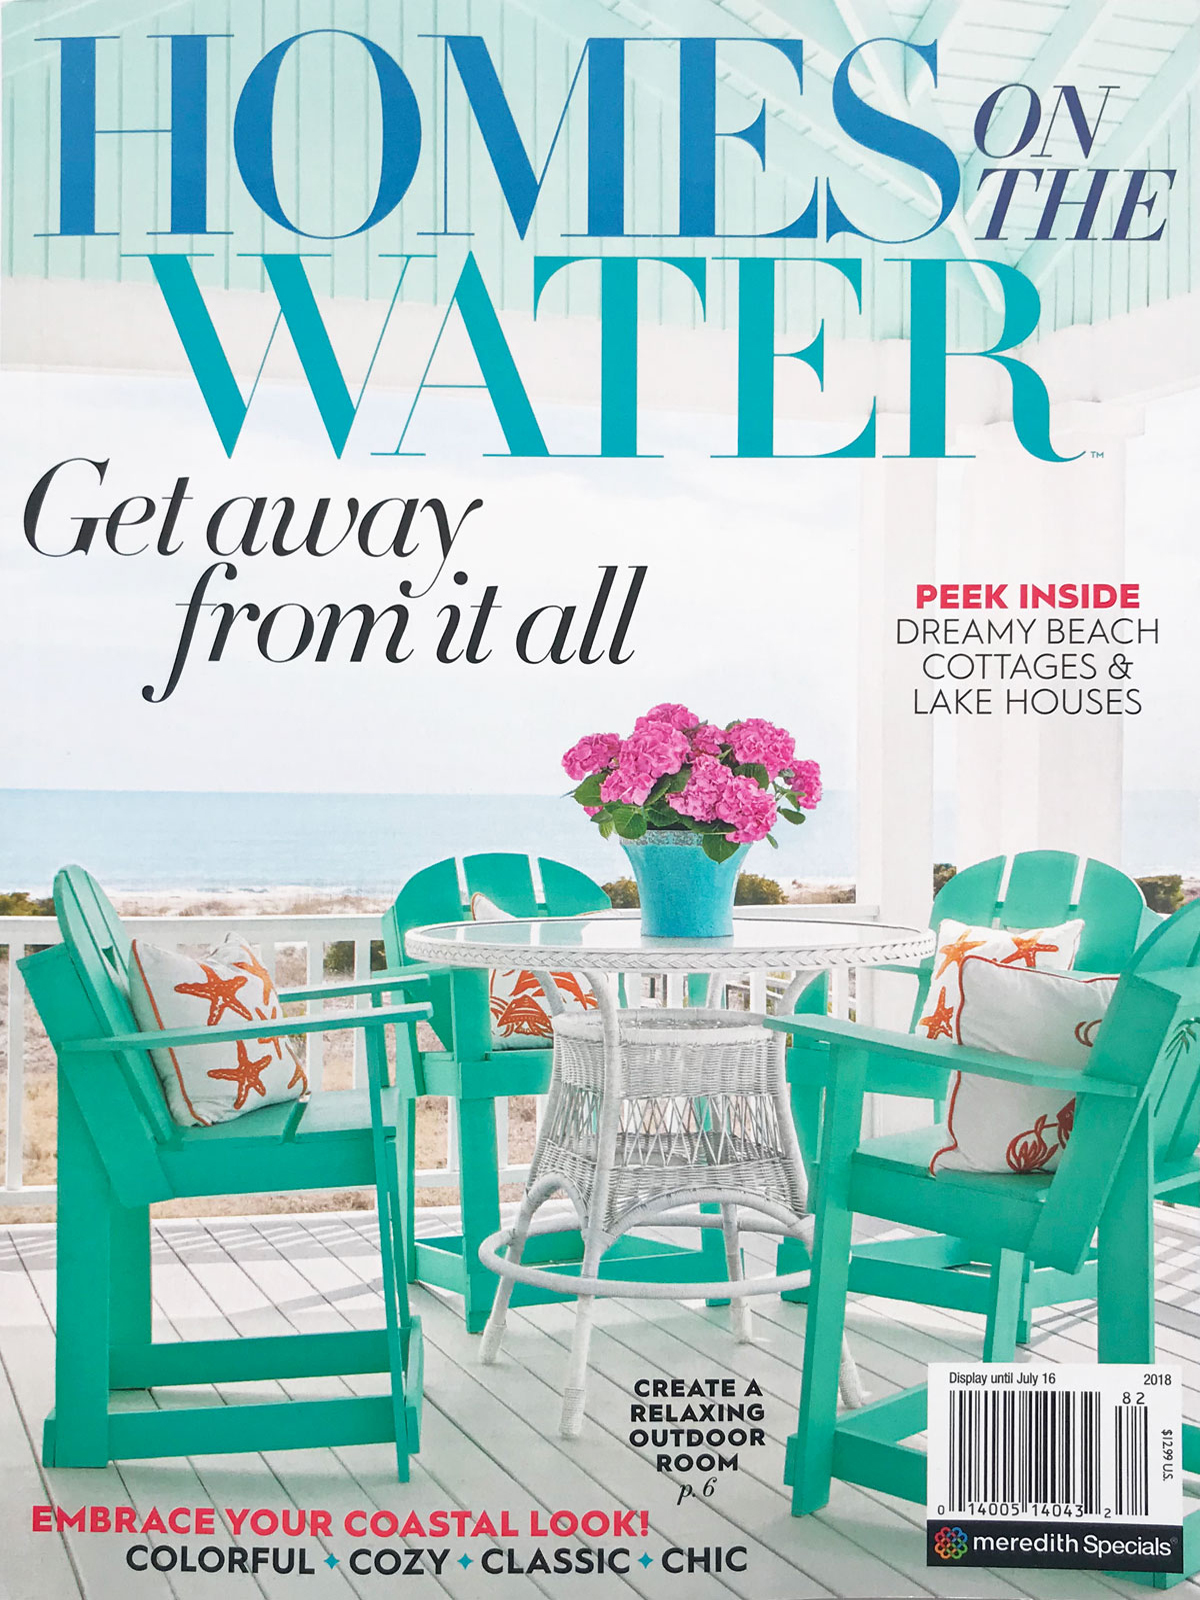 Blackband_Design_Homes_on_the_Water_Cover